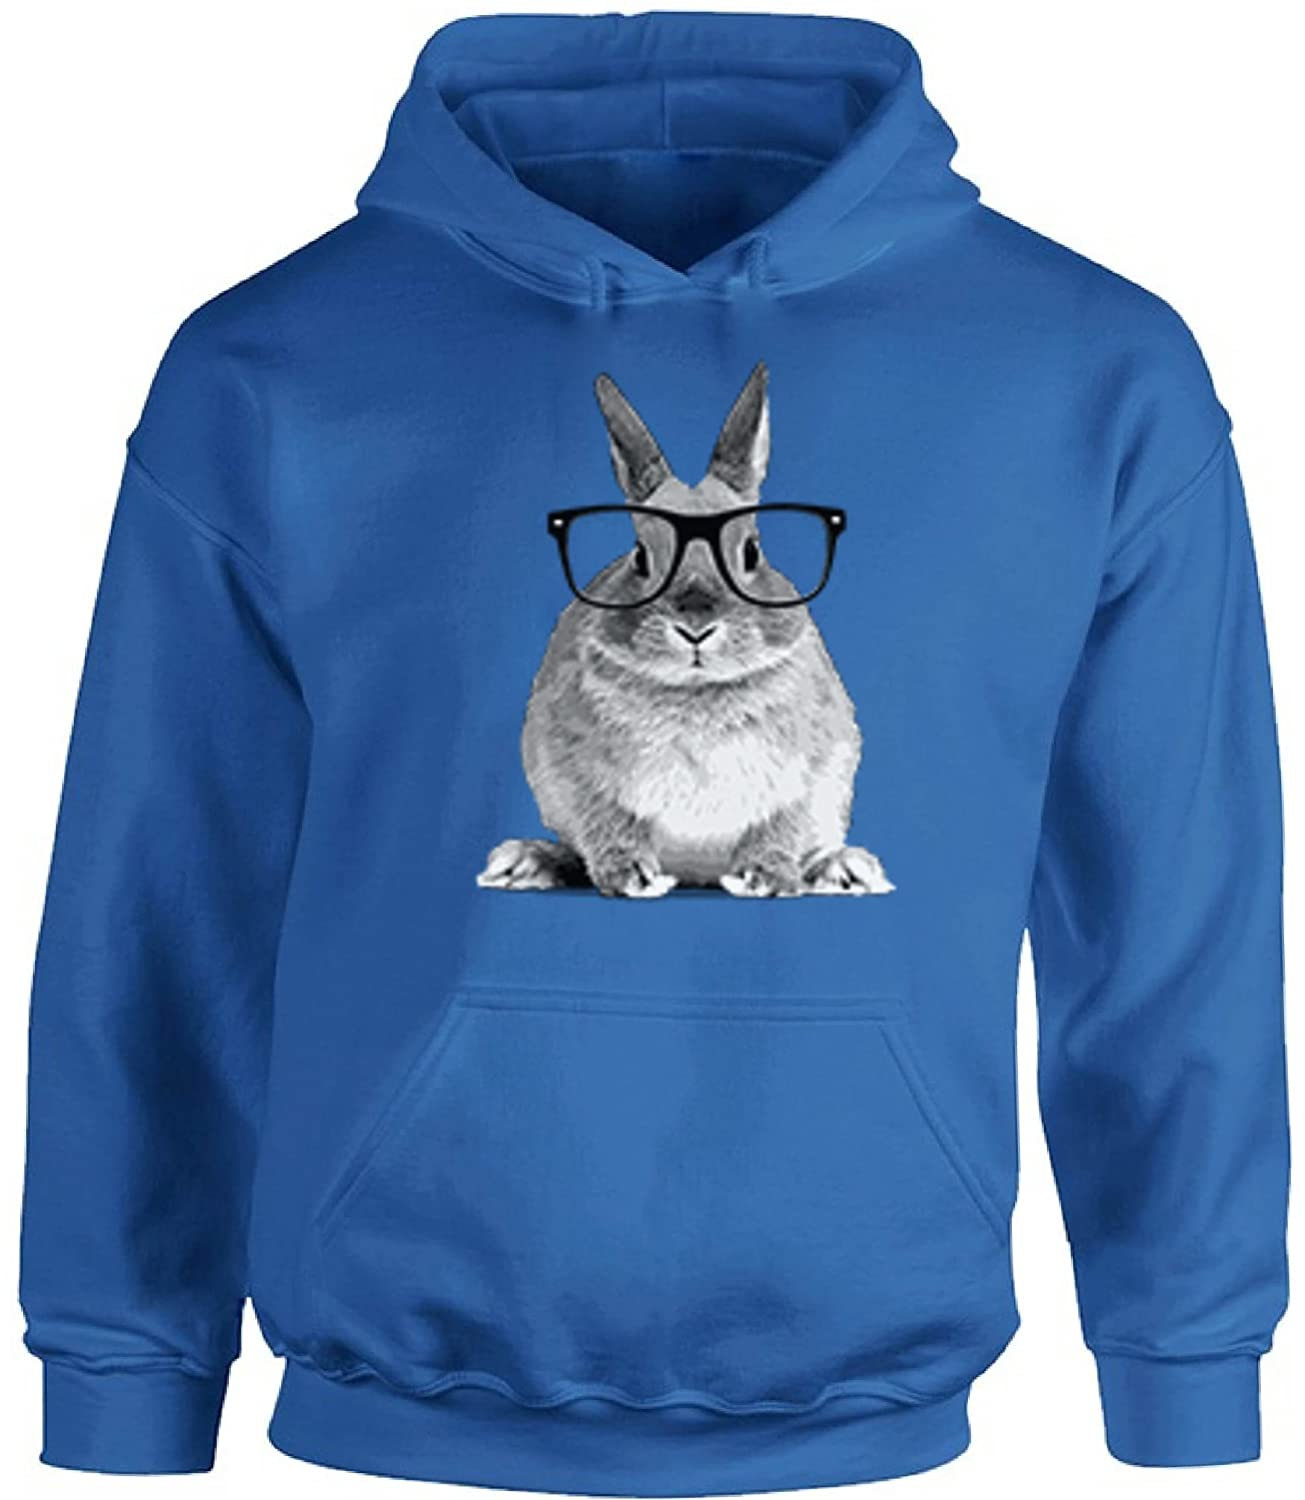 Awkward Styles Unisex Rabbit with Glasses Funny Cute Hoodie Hooded Sweatshirts Hipster Rabbit